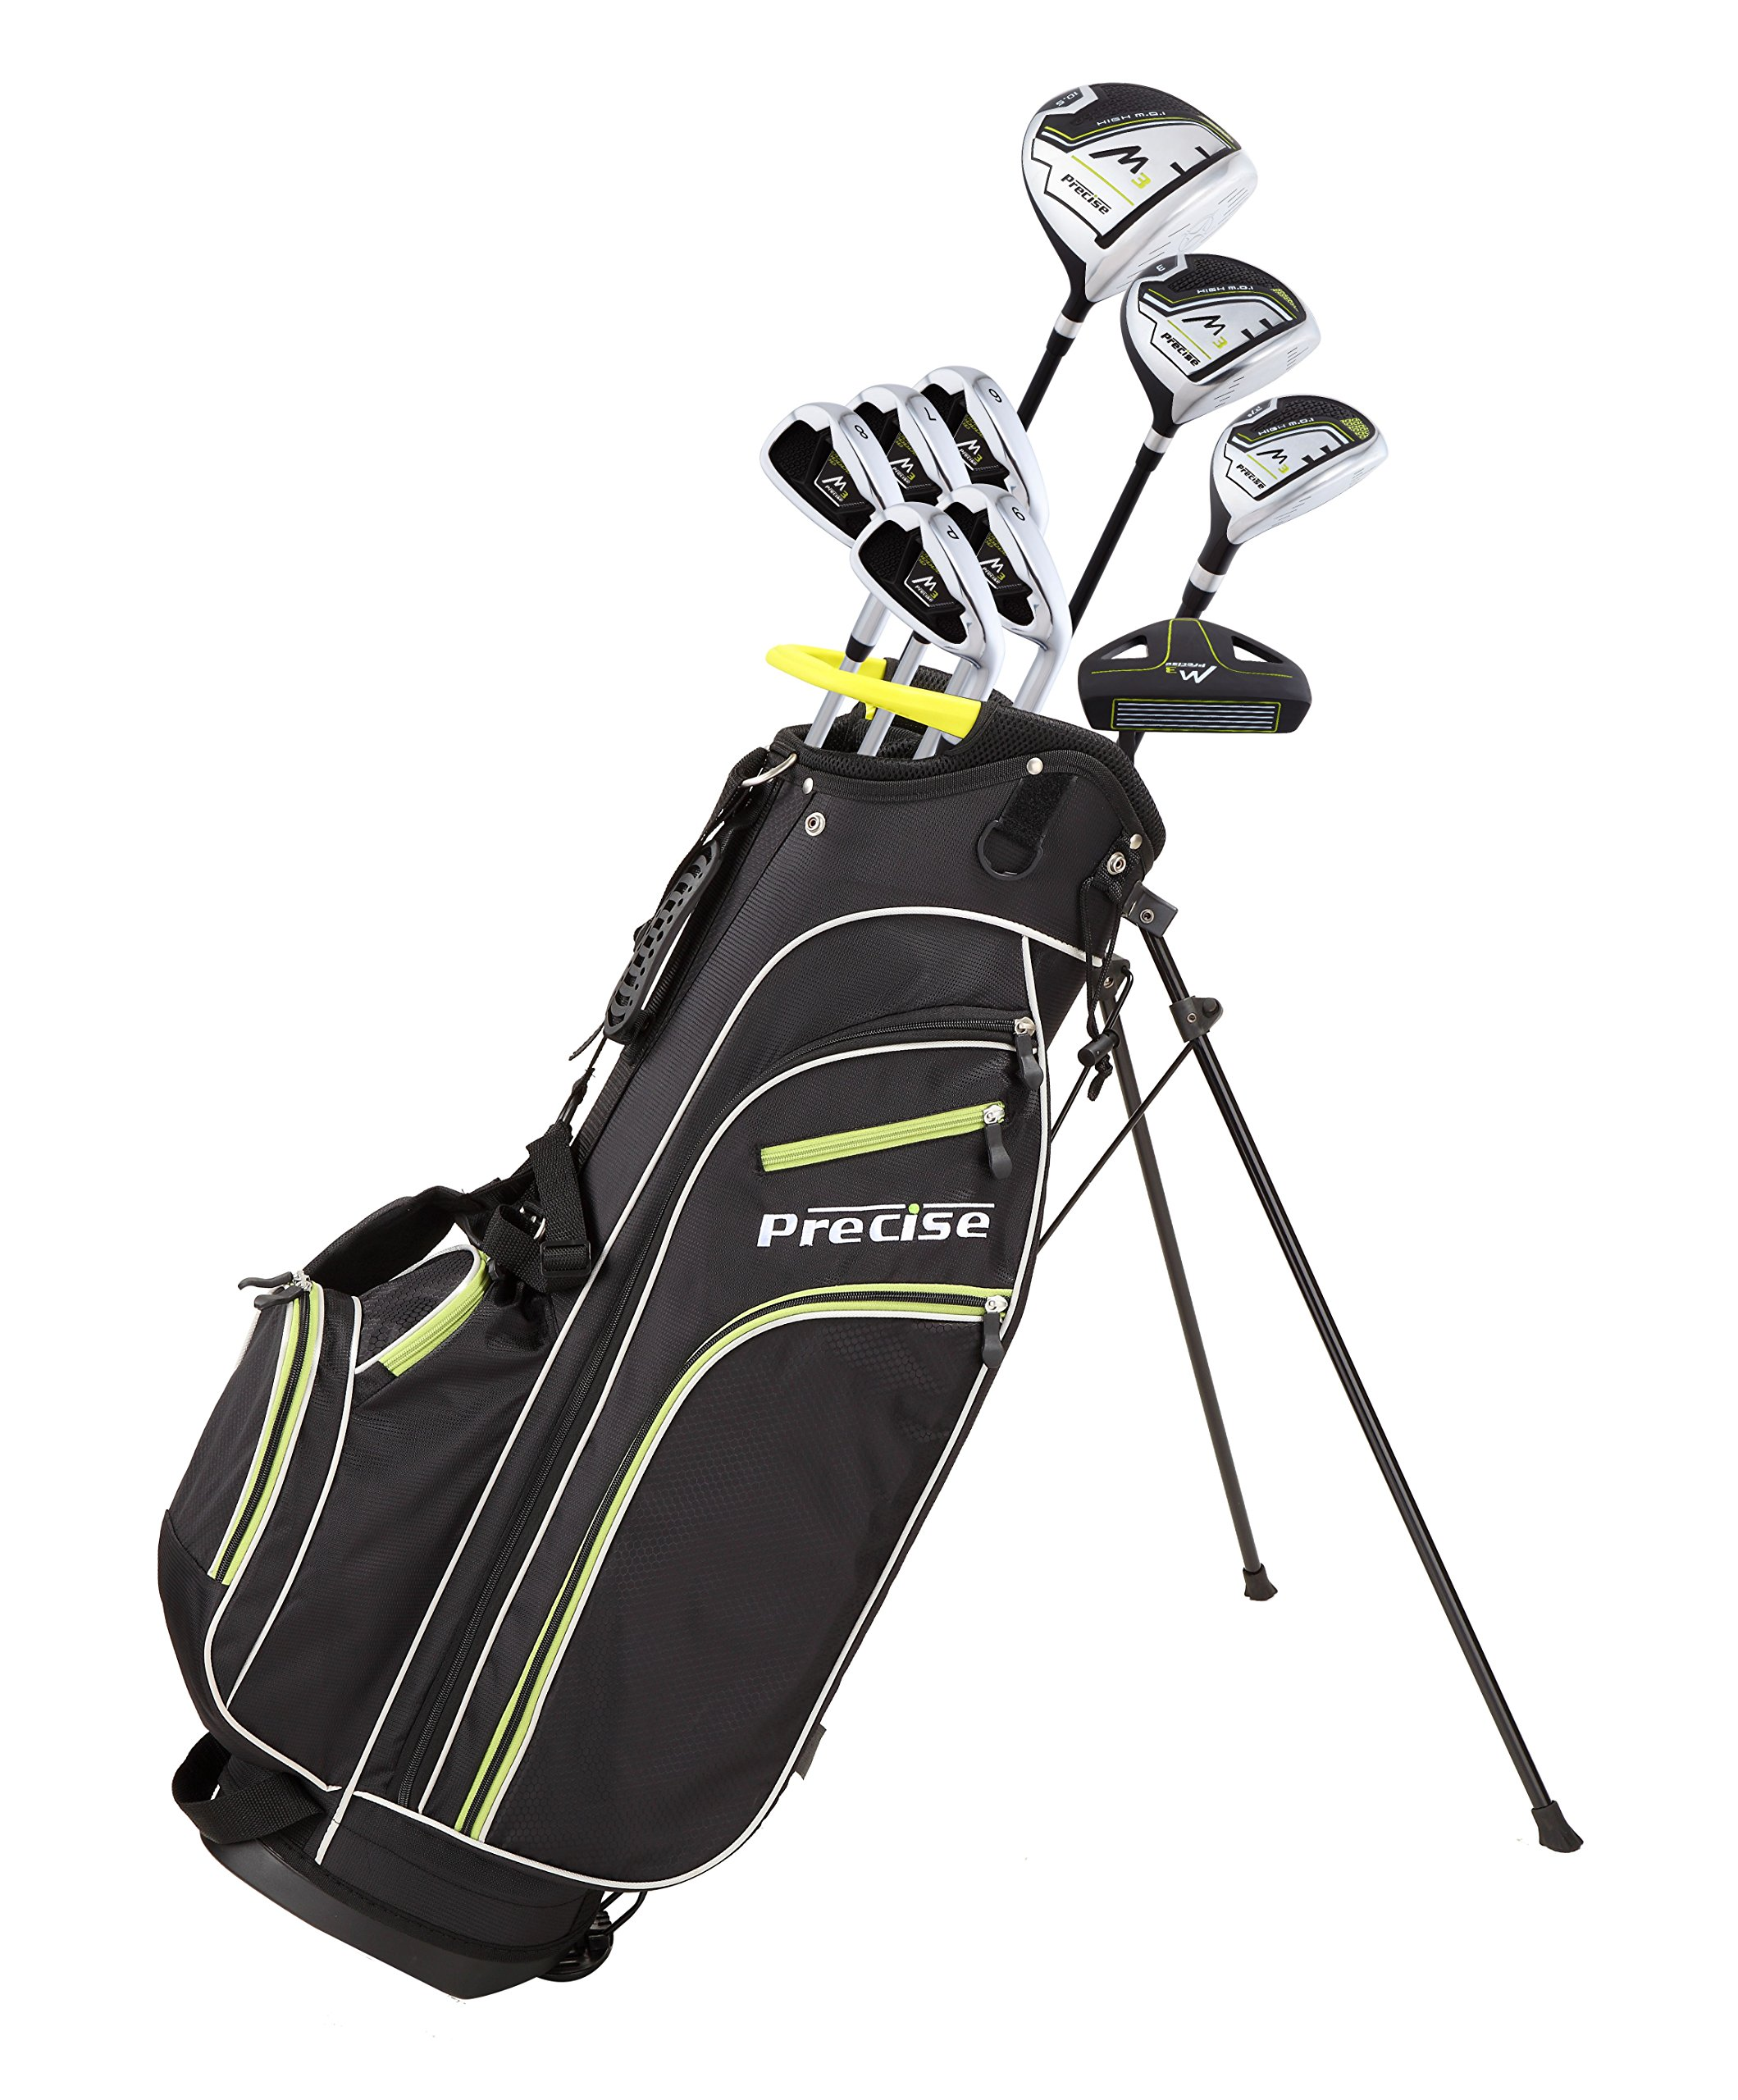 Quality Men's Right Handed Complete Golf Club Set Includes: 460cc Driver, 3 Wood, 21 Hybrid, 6, 7, 8, 9, PW Irons, Putter, Deluxe Stand Bag & 3 Headcovers by Precise